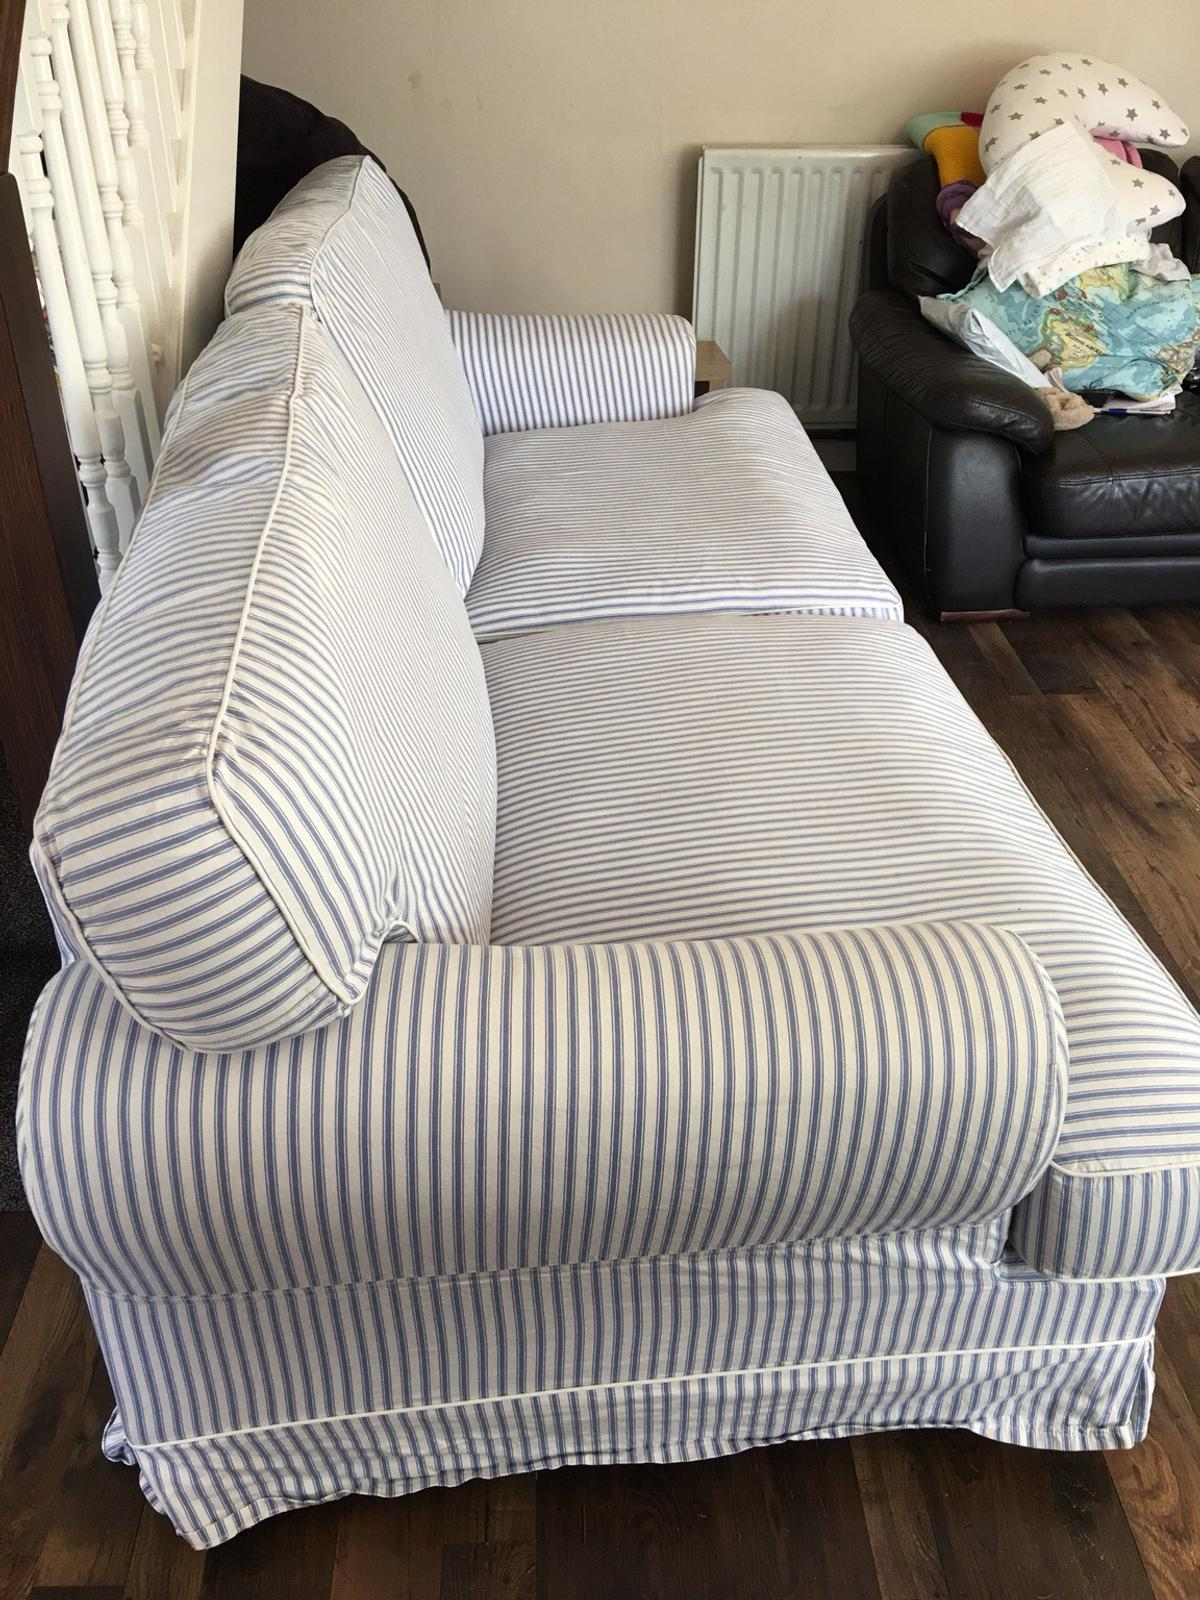 Amazing Huge Ikea Ekeskog Sofa In Le10 Bosworth For 40 00 For Sale Pdpeps Interior Chair Design Pdpepsorg